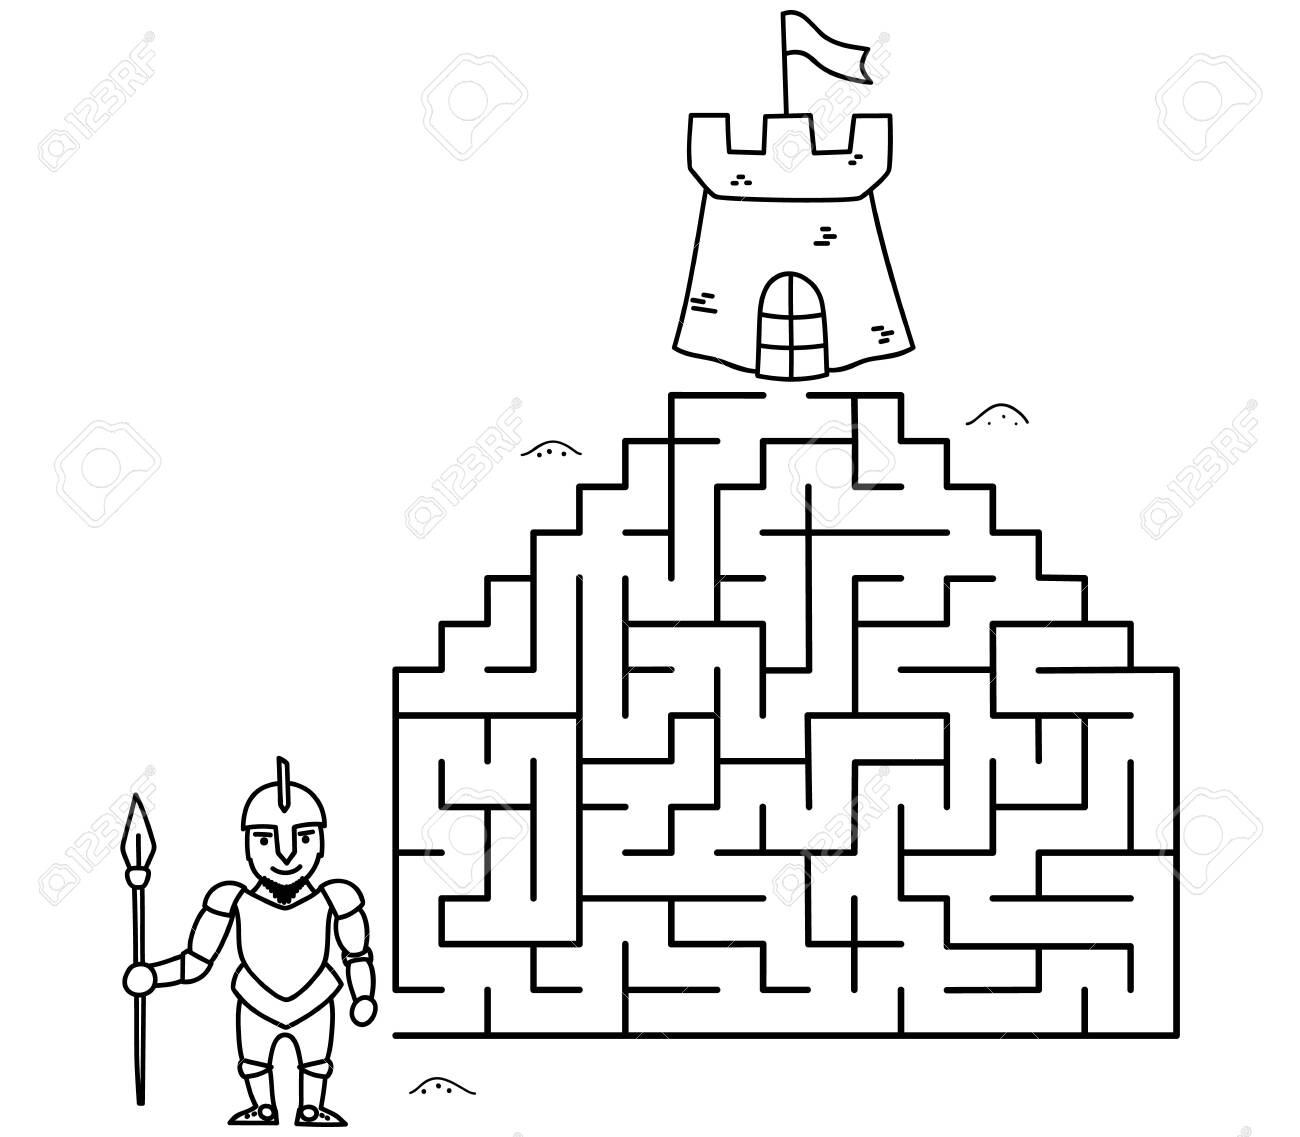 Large maze #2 coloring page - Print. Color. Fun!   1137x1300